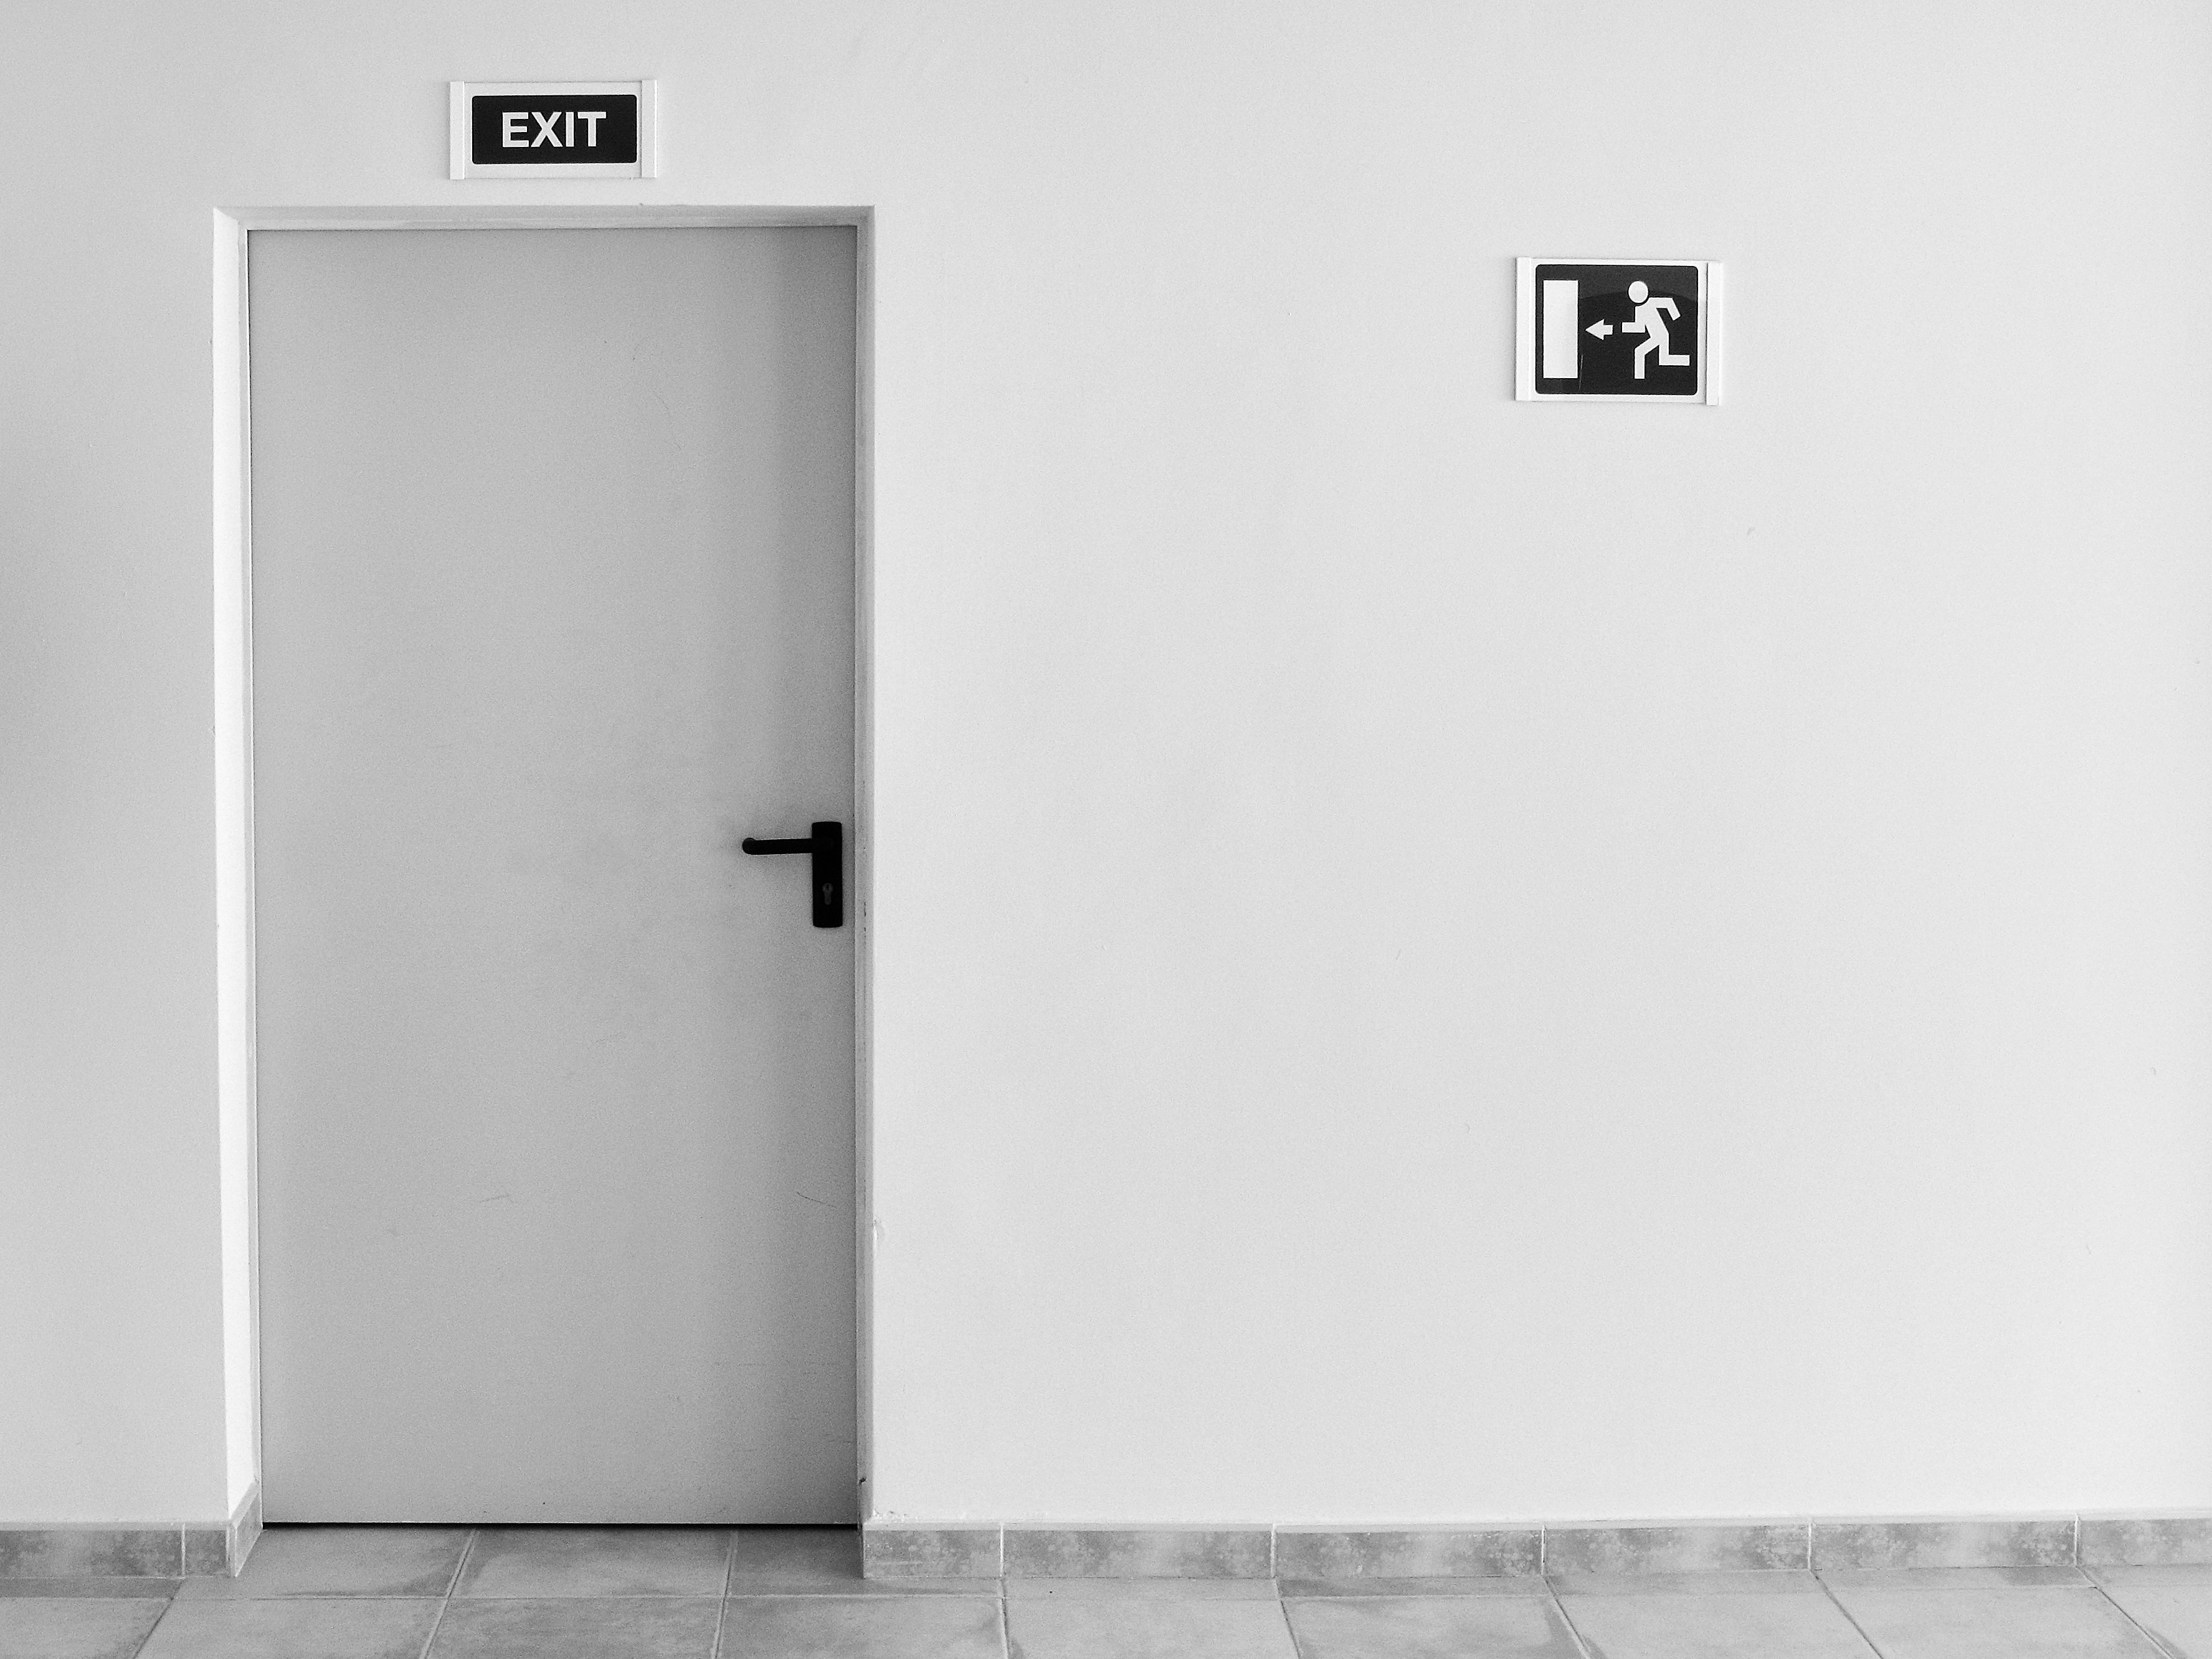 Black and white photo of an emergency exit sign and door